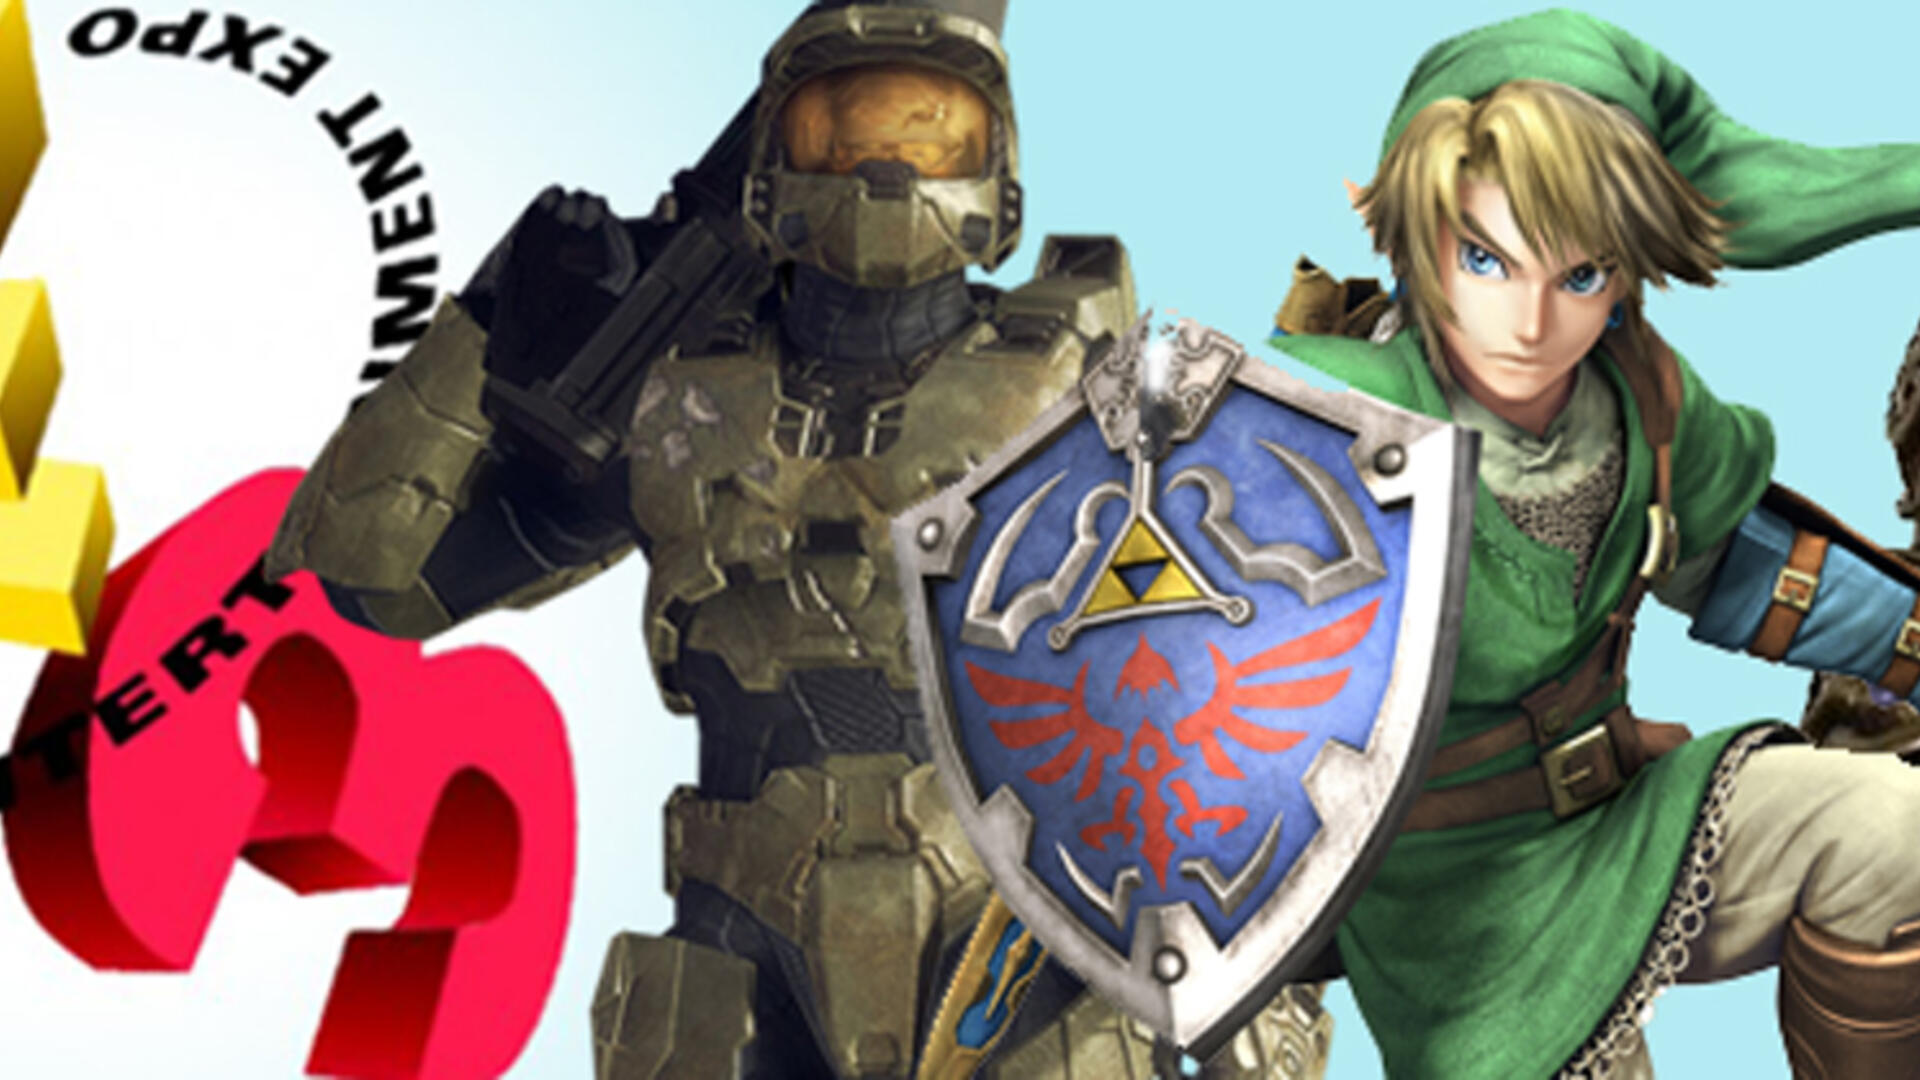 E3 2014: The Best and Worst Case Scenarios for Nintendo, Microsoft, and Sony